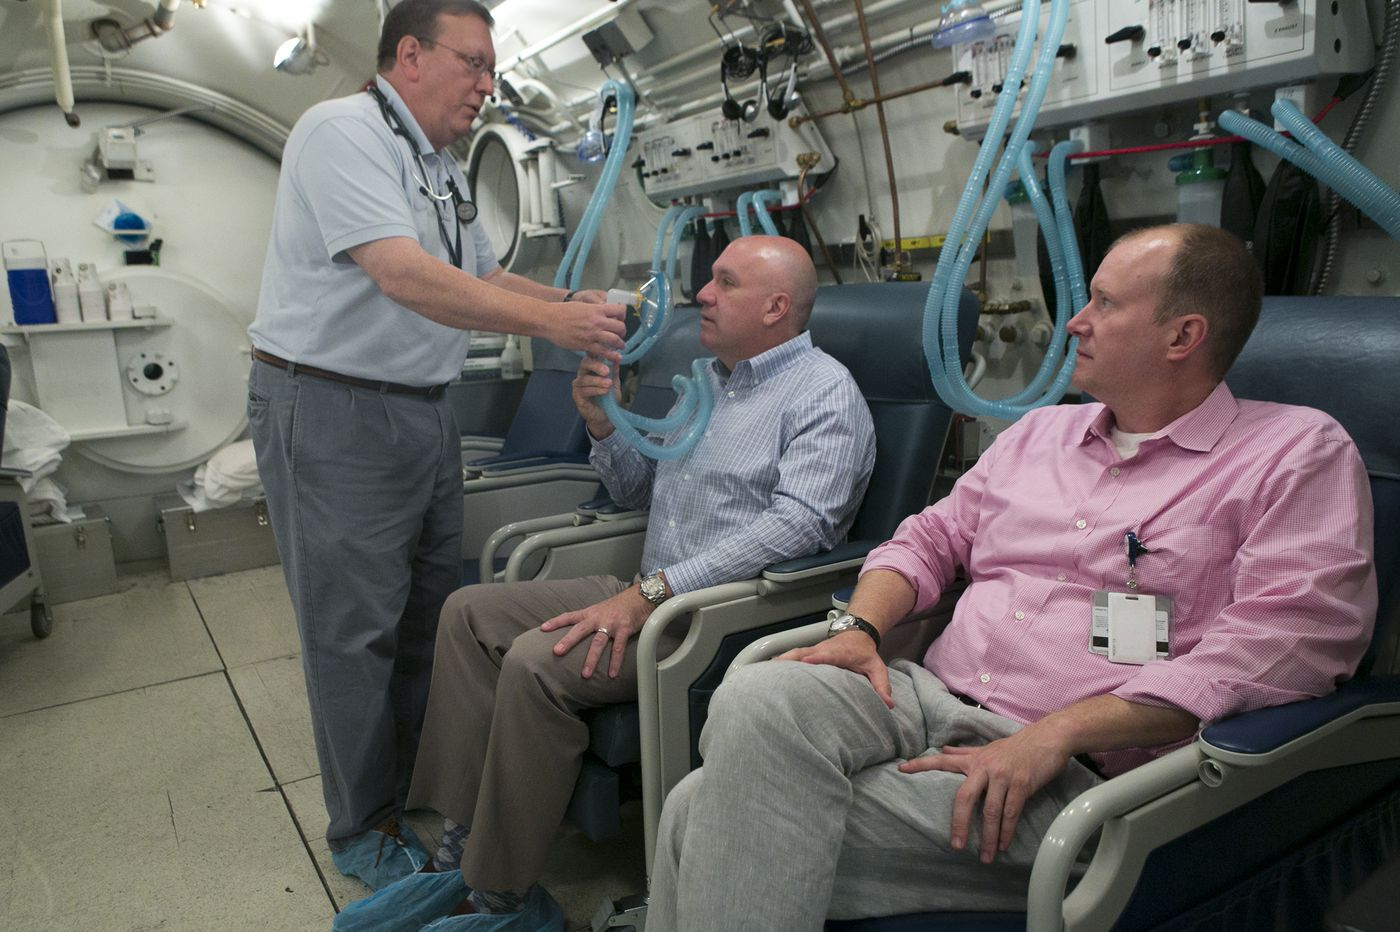 Hyperbaric oxygen: The mysterious therapy that saved a cancer survivor from radiation side effects